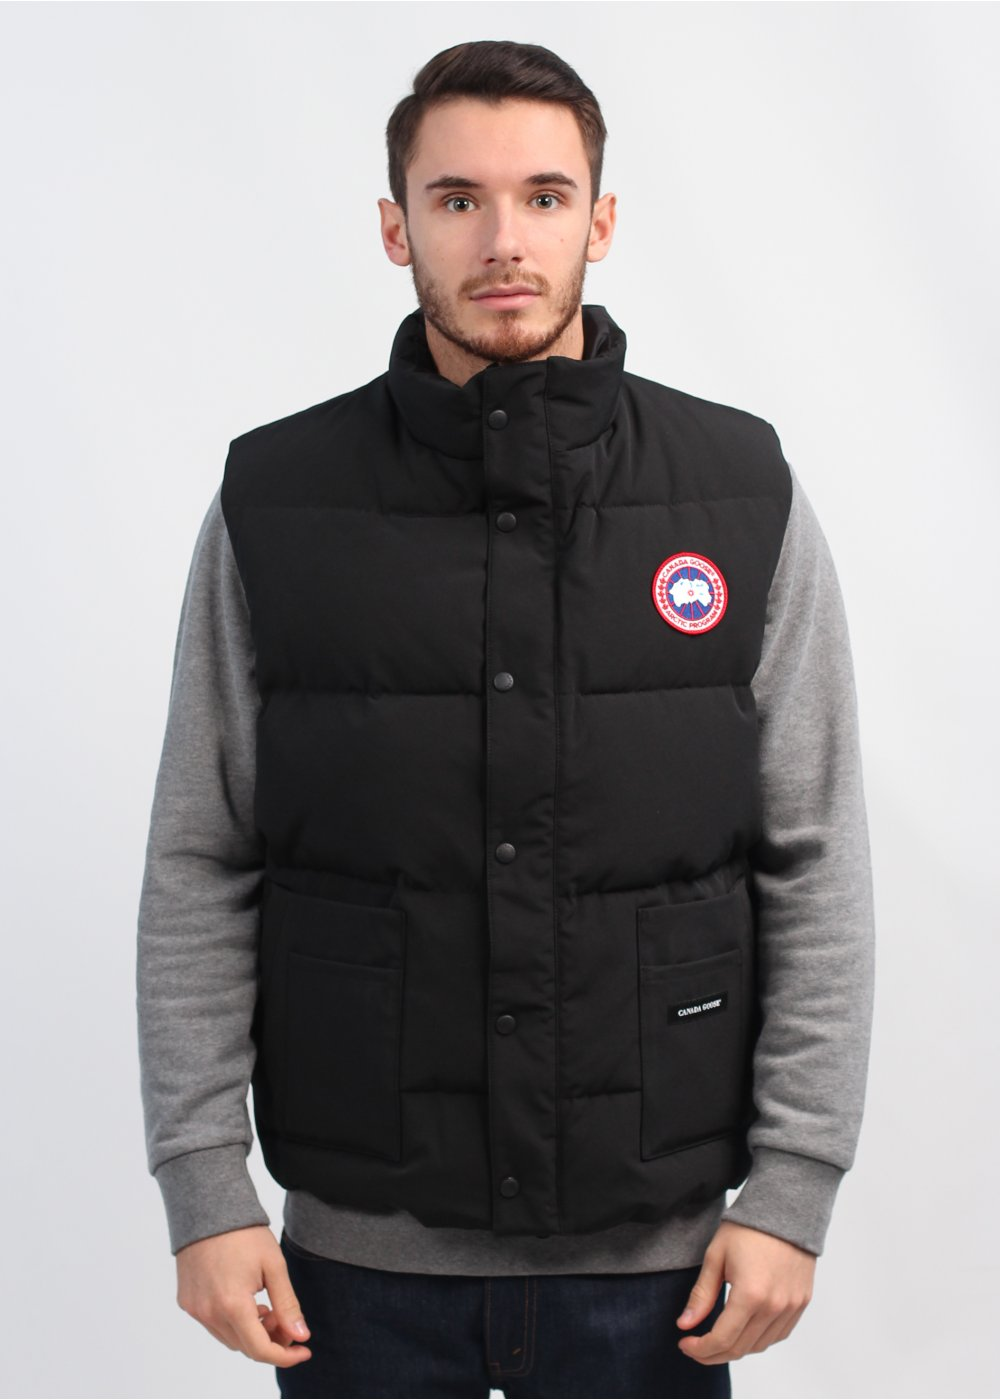 Canada Goose mens replica authentic - Top Brand Canada Goose Outlet Store Fake High Quality Replicas At ...